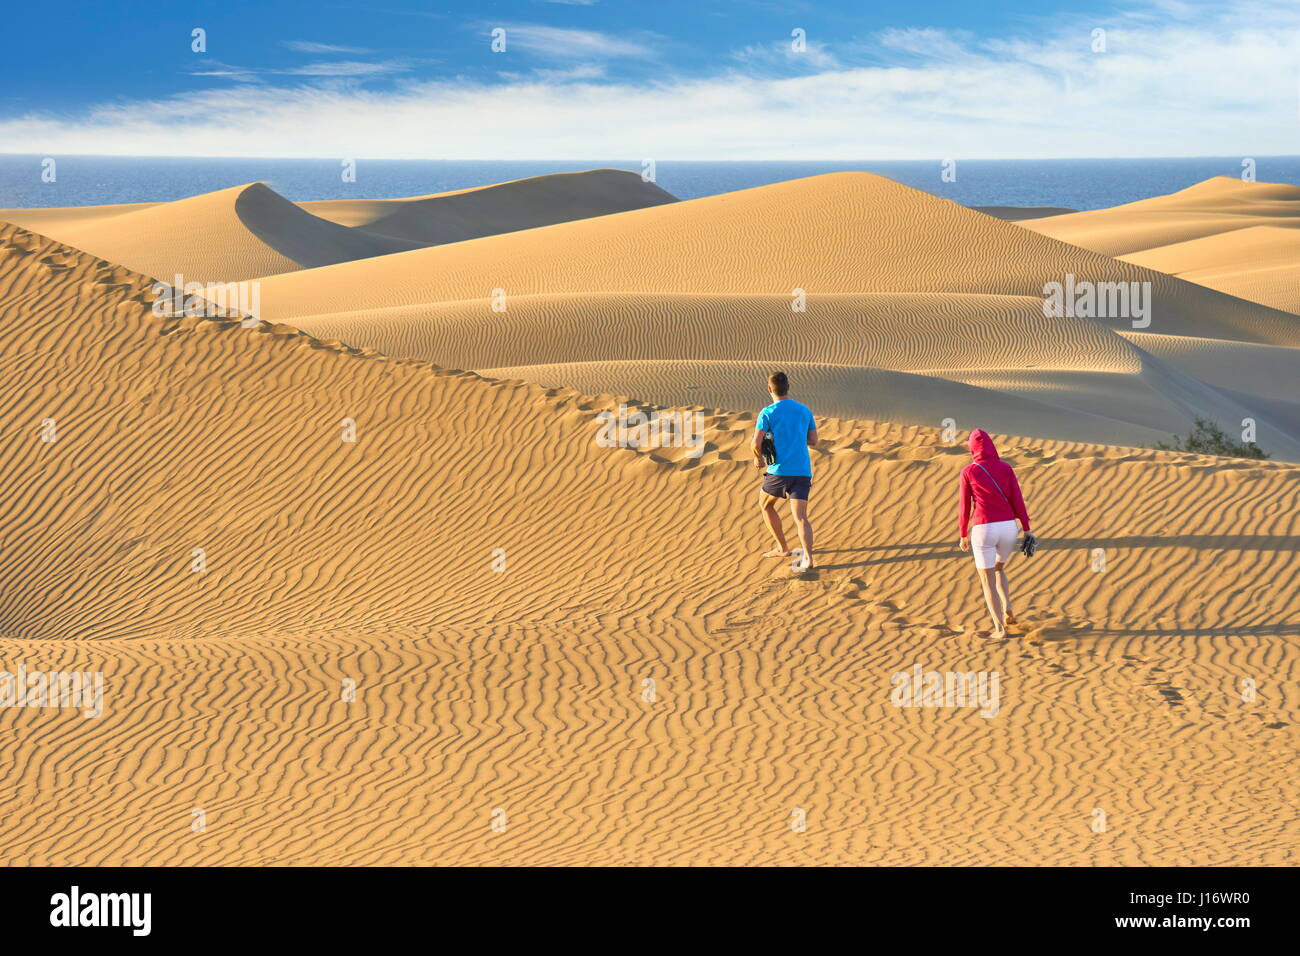 Tourists on the Maspalomas Sand Dunes National Park, Canary Islands, Gran Canaria, Spain - Stock Image